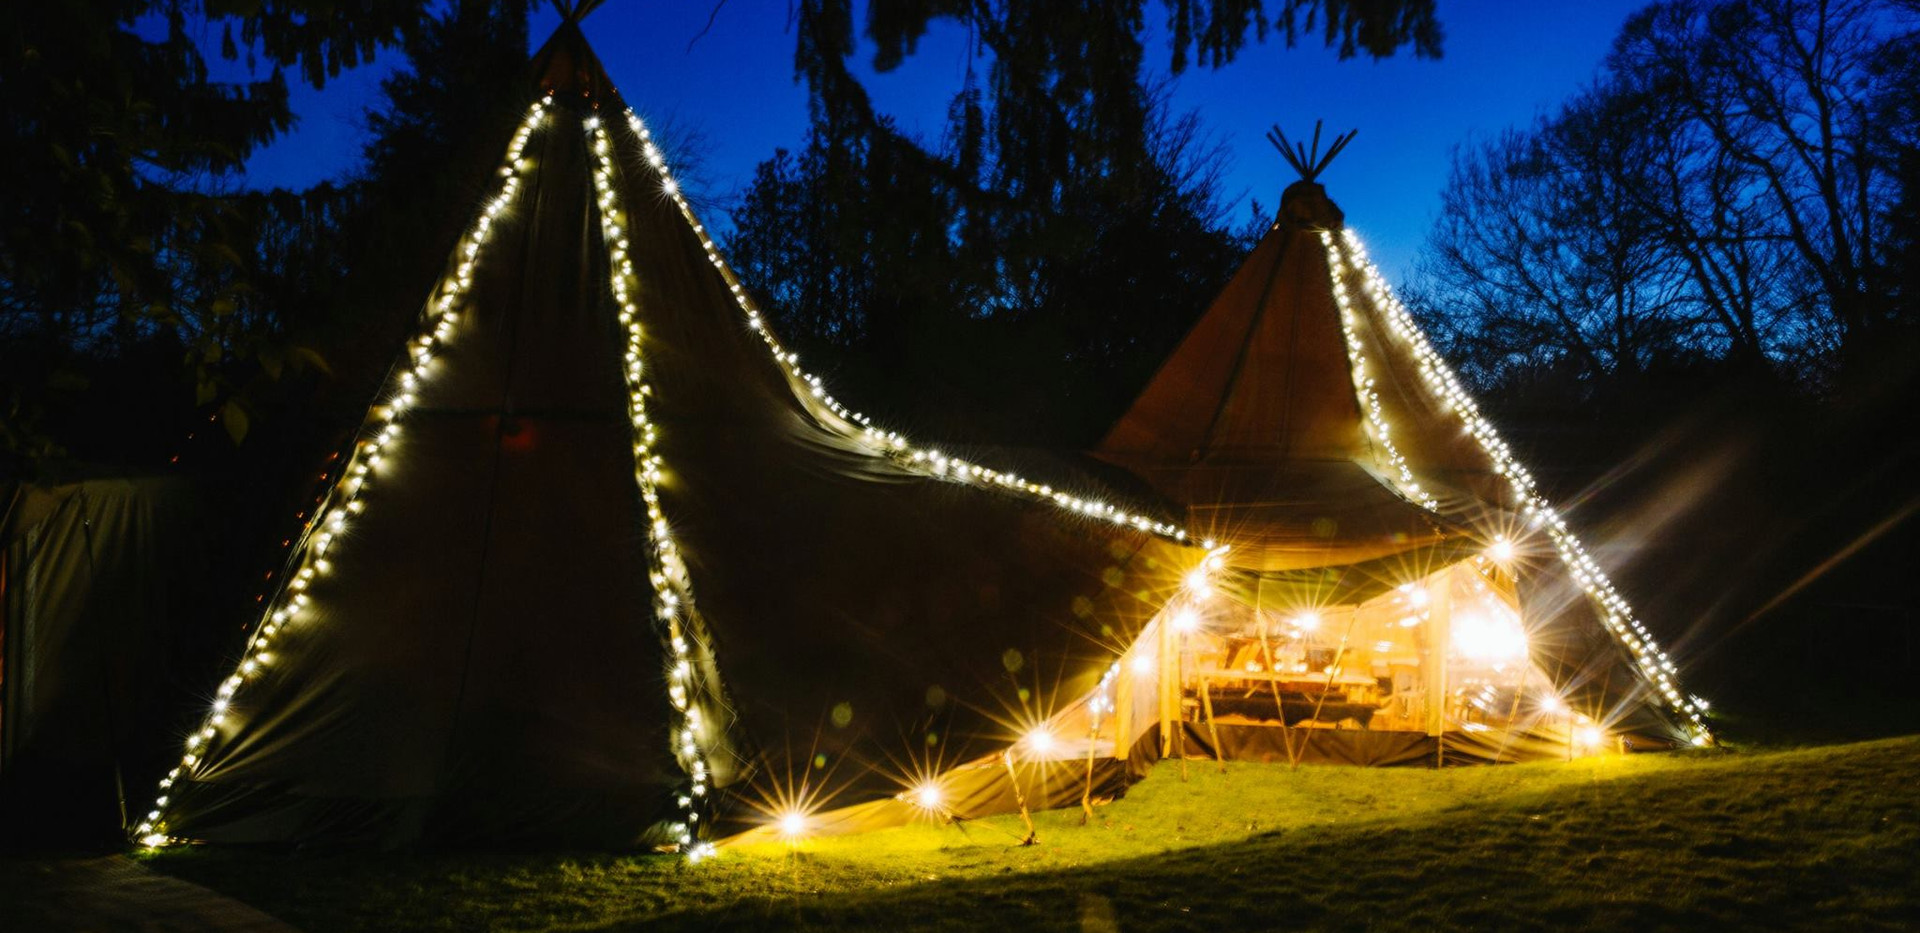 tipi night lighting.jpg